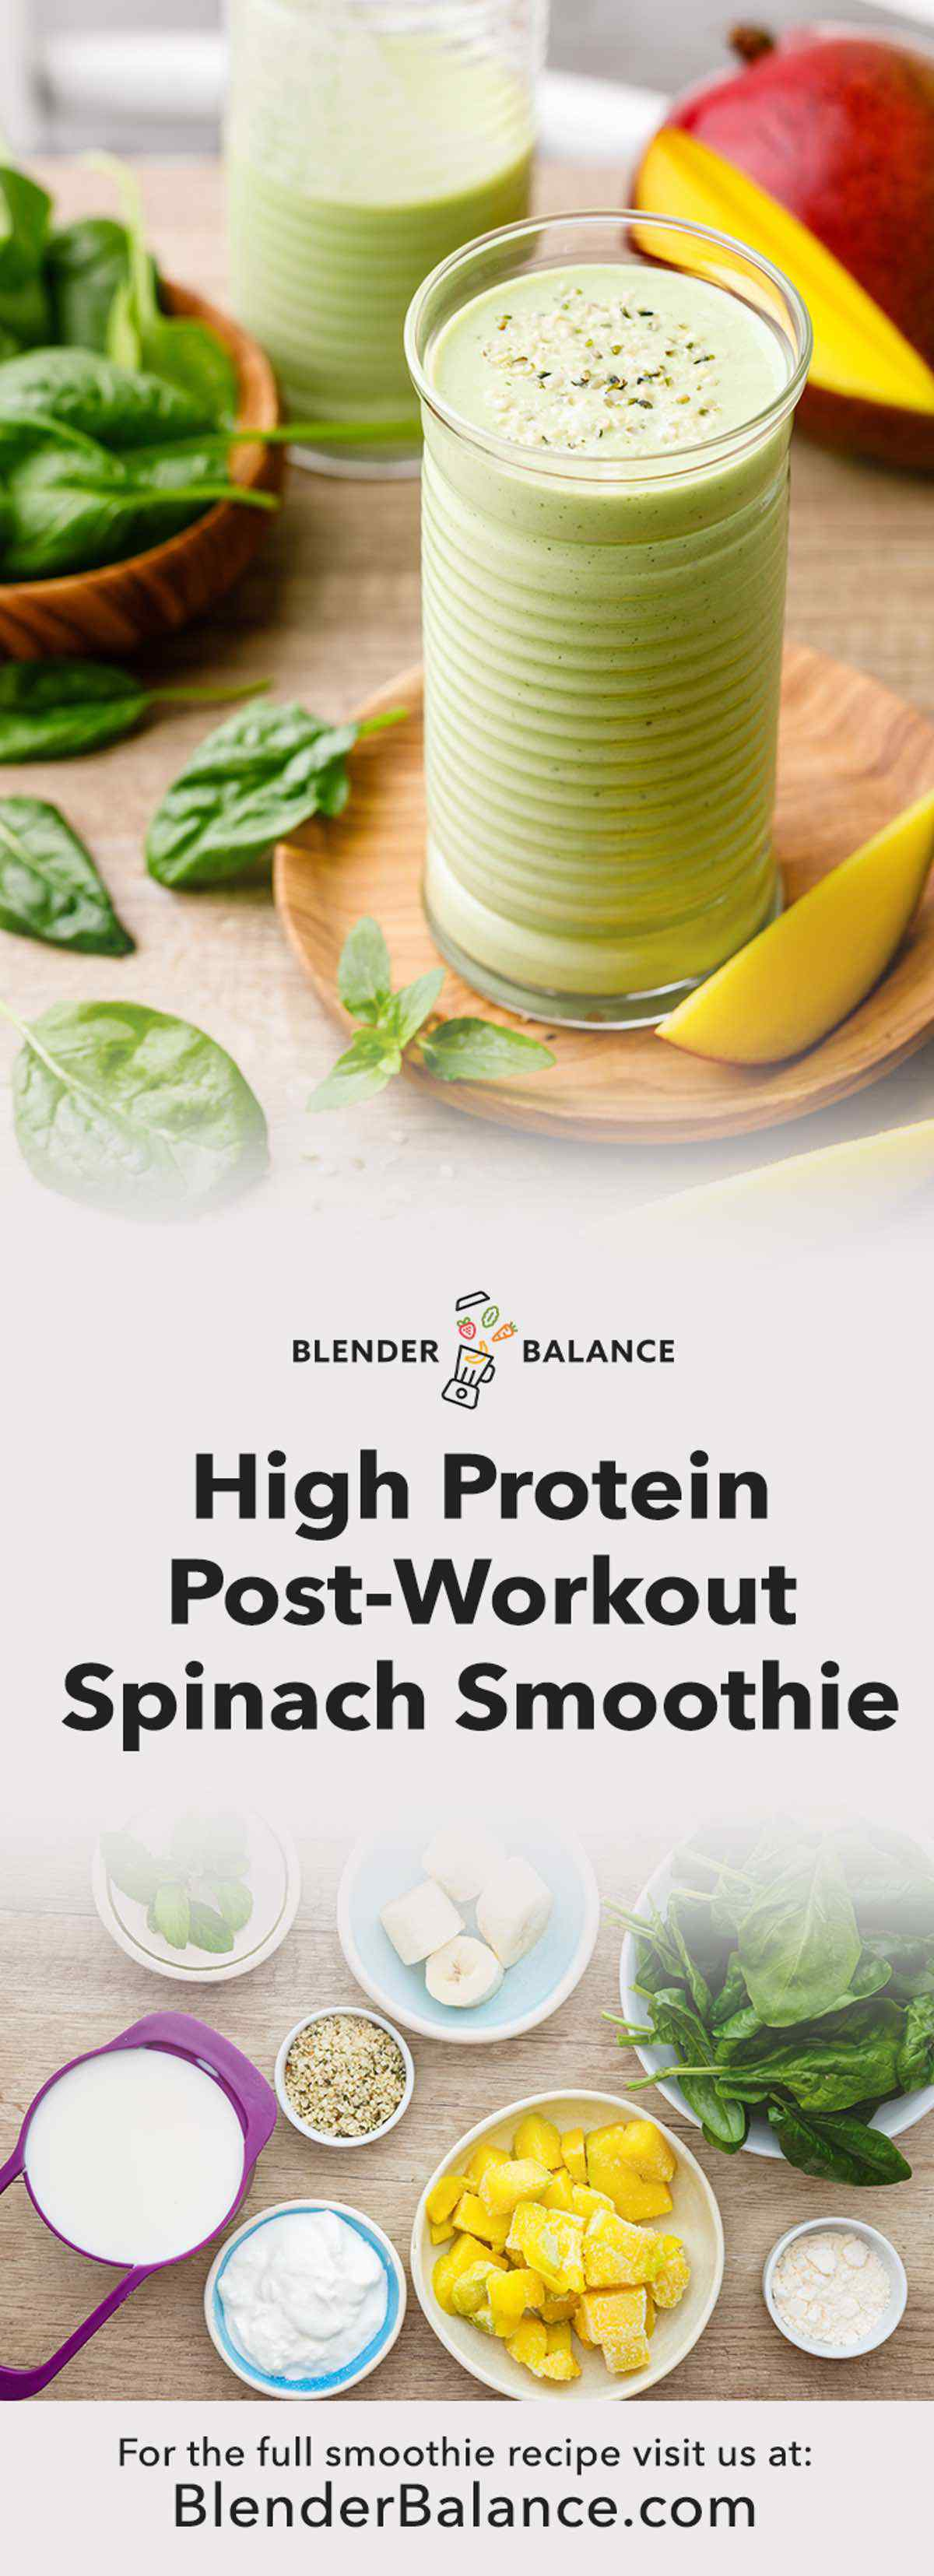 High Protein Spinach Smoothie for After Workout Recovery